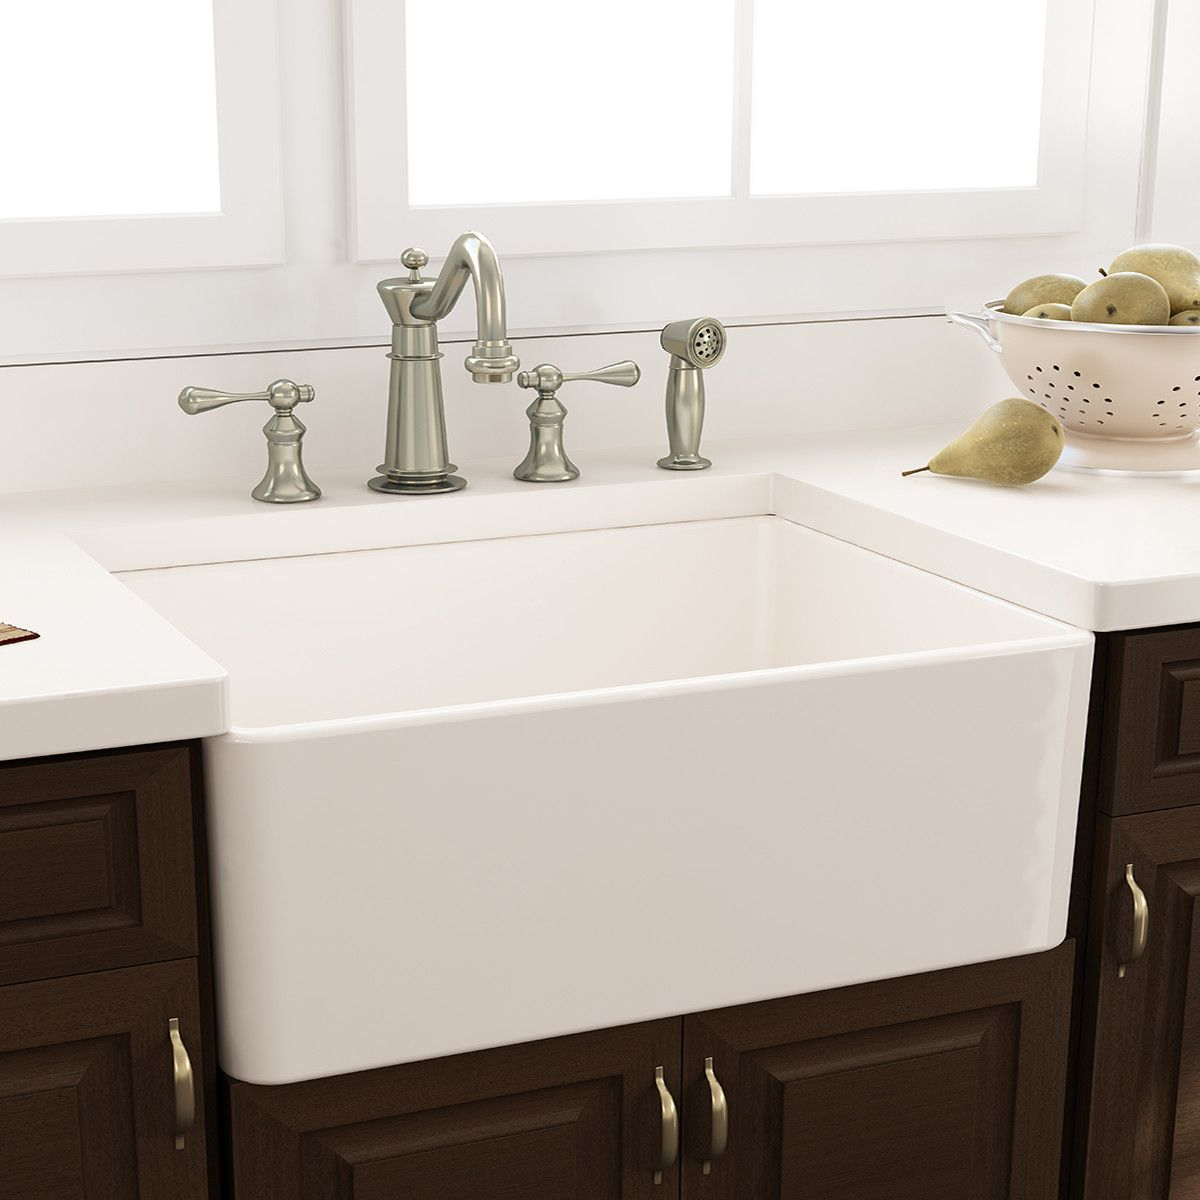 (Wayfair Designer Discount) Nantucket Sinks X Fireclay Farmhouse Kitchen  Sink With Grid And Drain